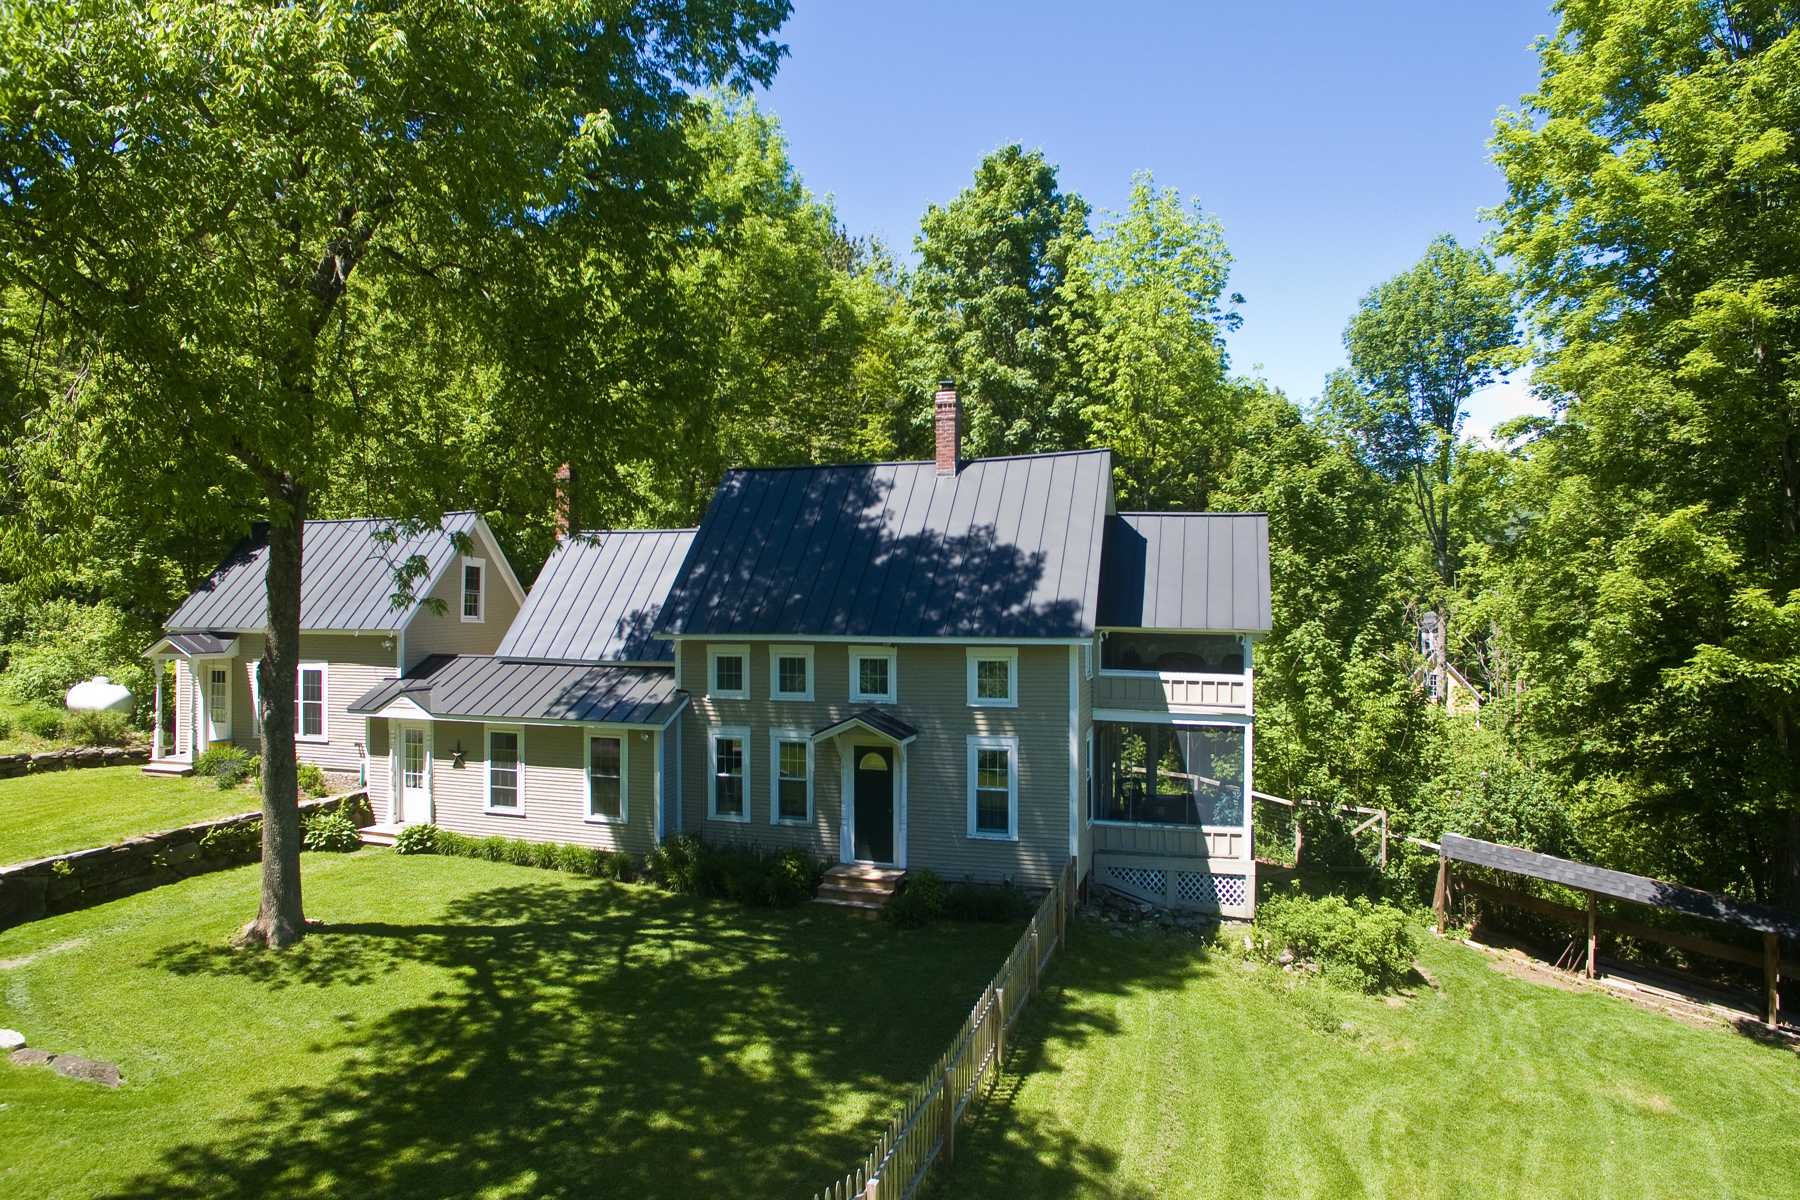 single family homes for Sale at Endless Mountain Views 873 Liberty Hill Rd Rochester, Vermont 05767 United States